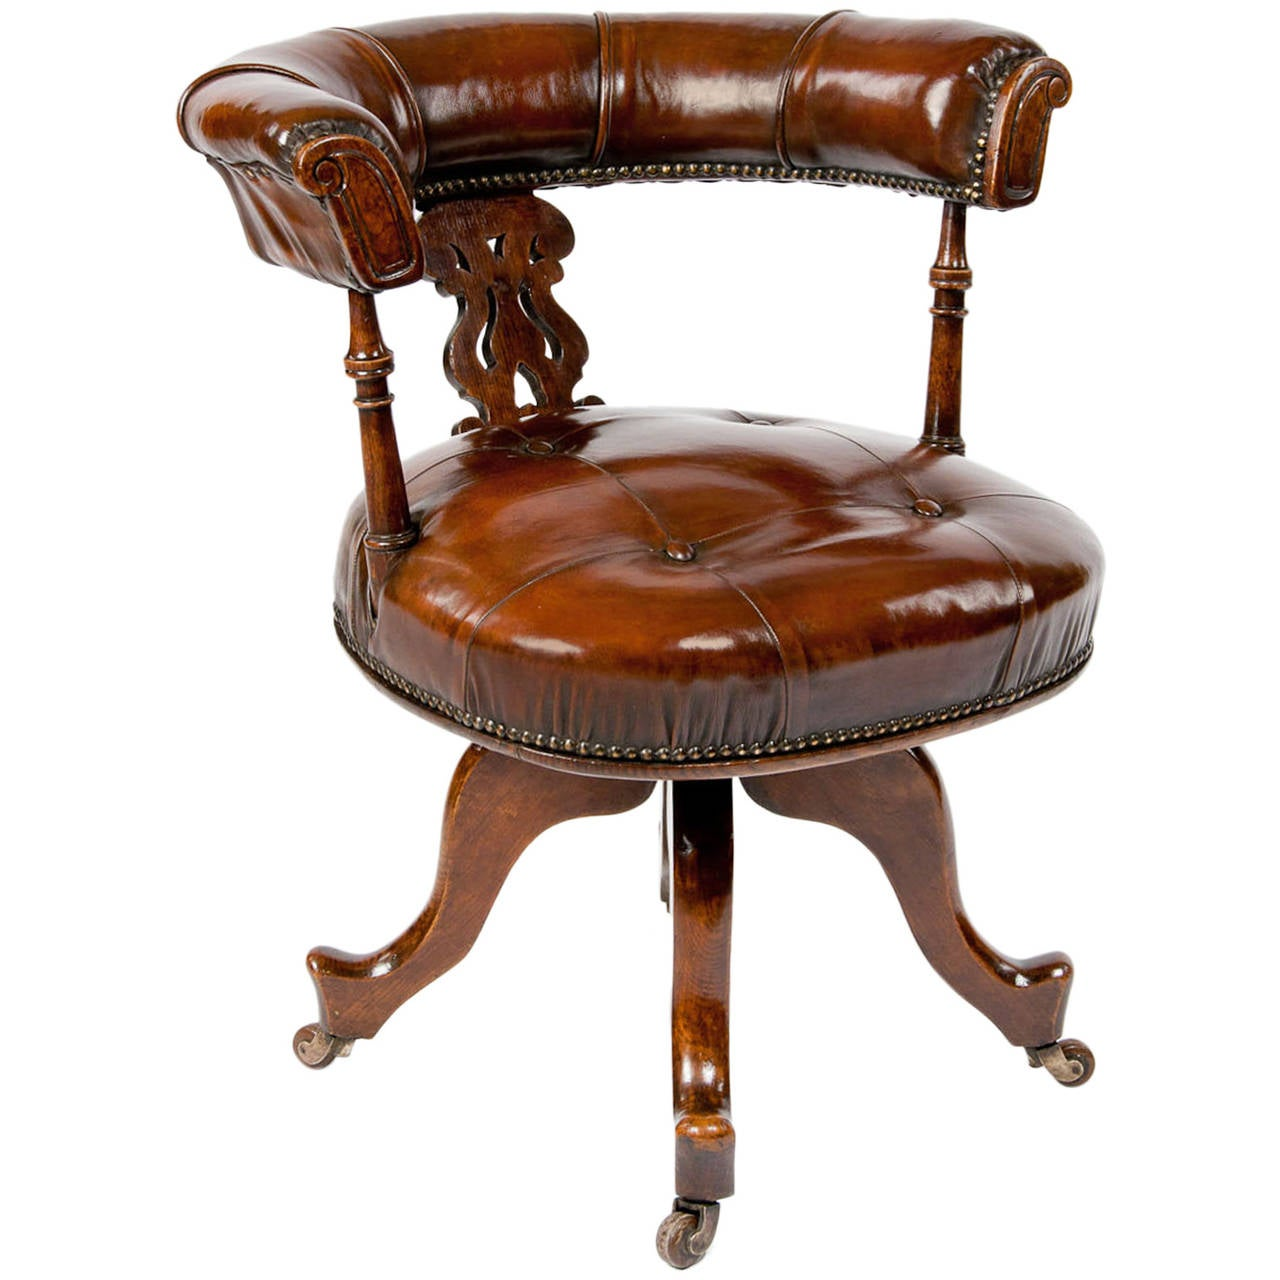 Dating victorian chairs